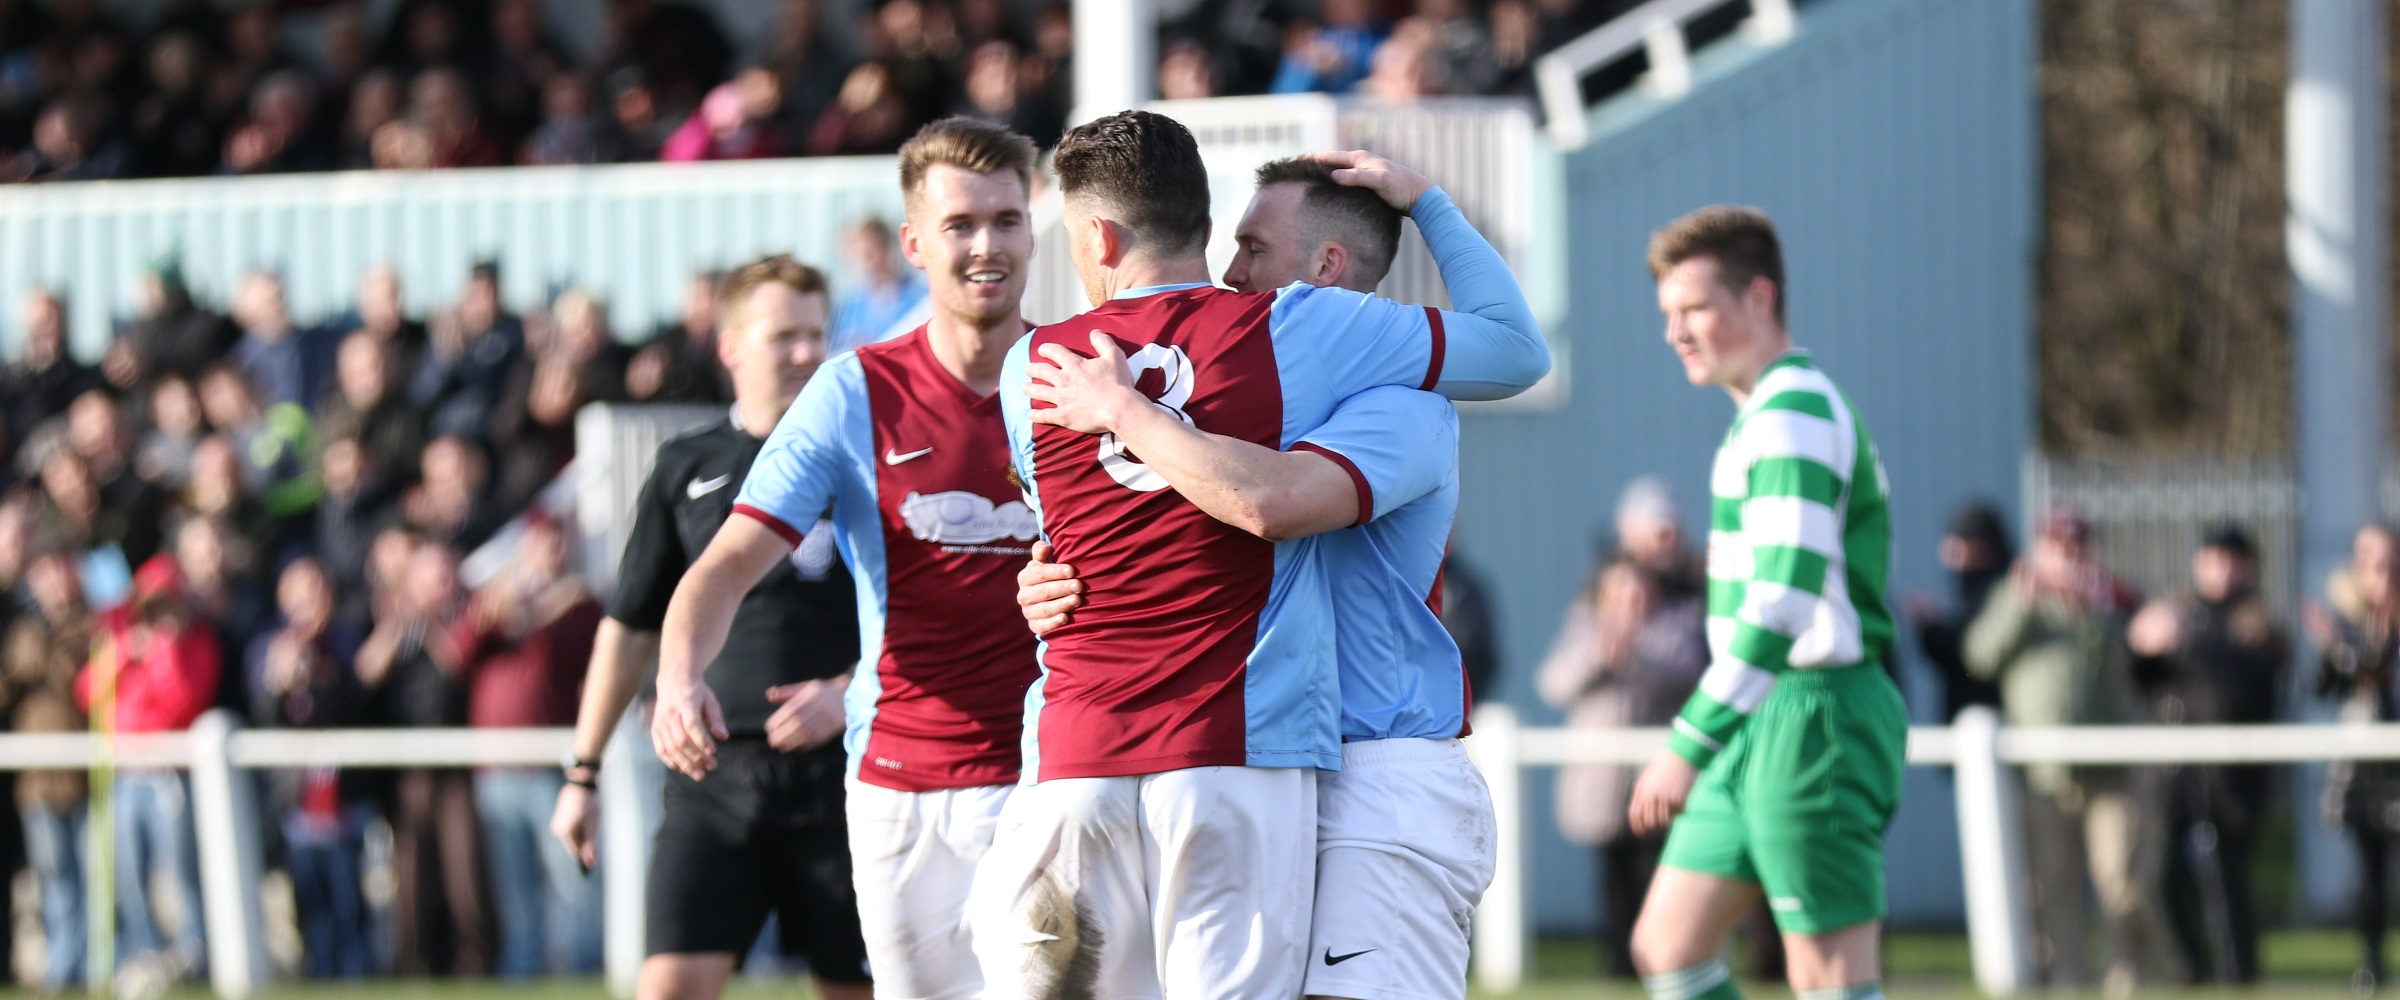 HIGHLIGHTS: South Shields 2-0 Birtley Town